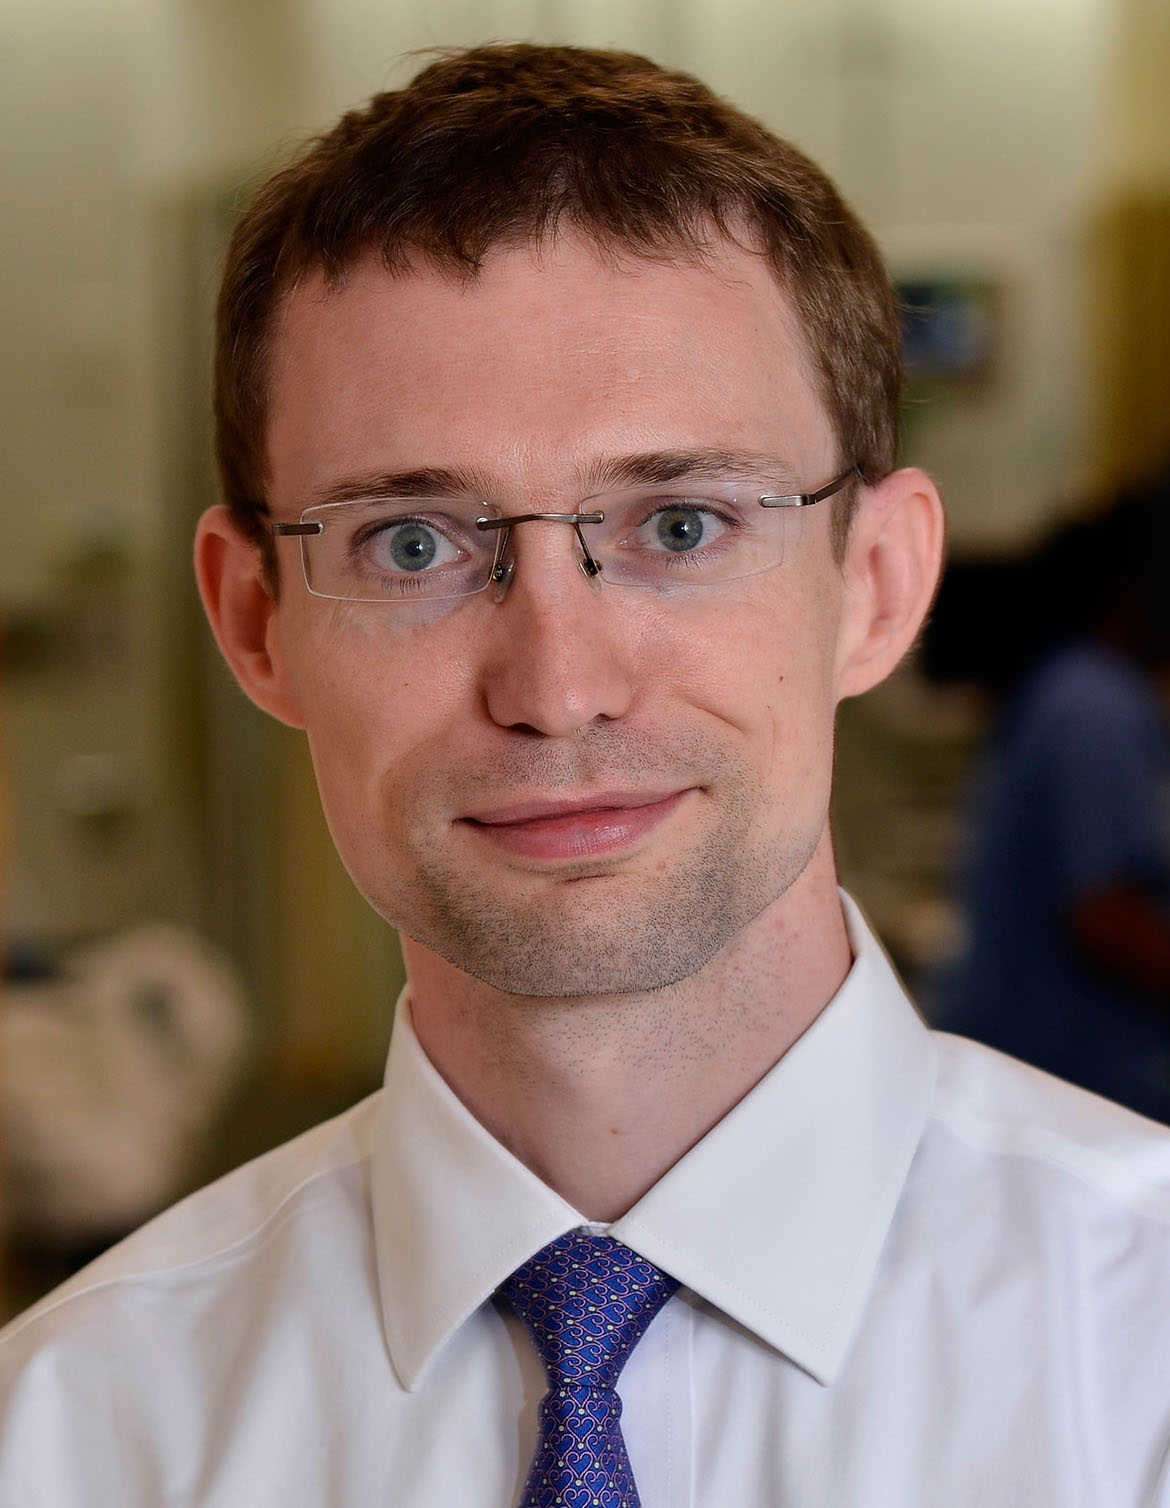 Image - headshot of Robert S. Griffin, MD, PhD